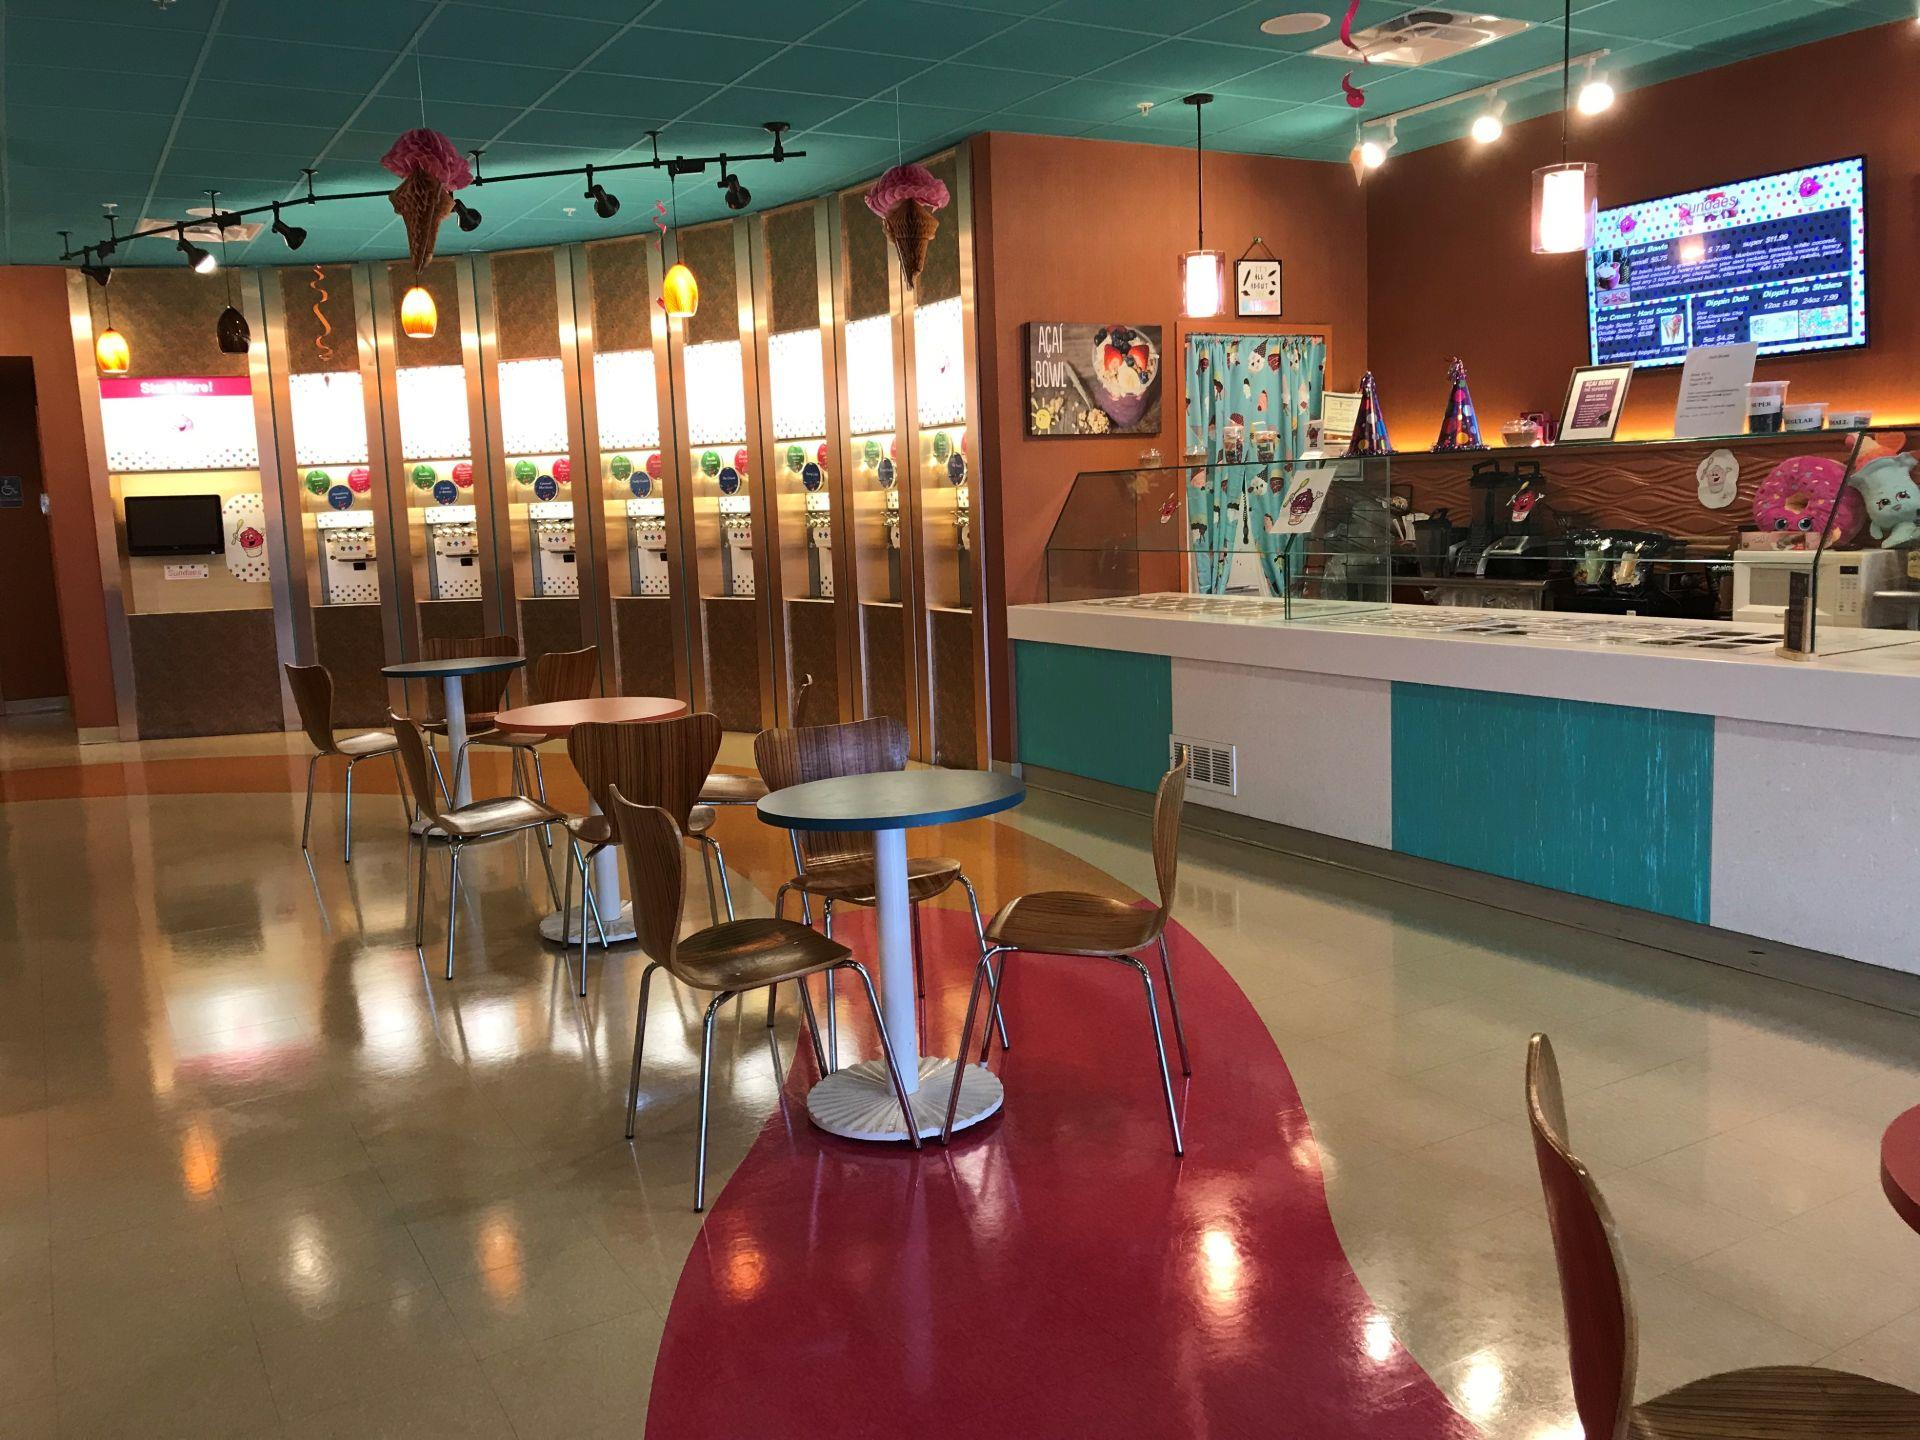 Interior of a self-serve ice cream shop tables and chairs in the center, a counter-top with ice cream toppings and a wall of self-serve ice cream machines